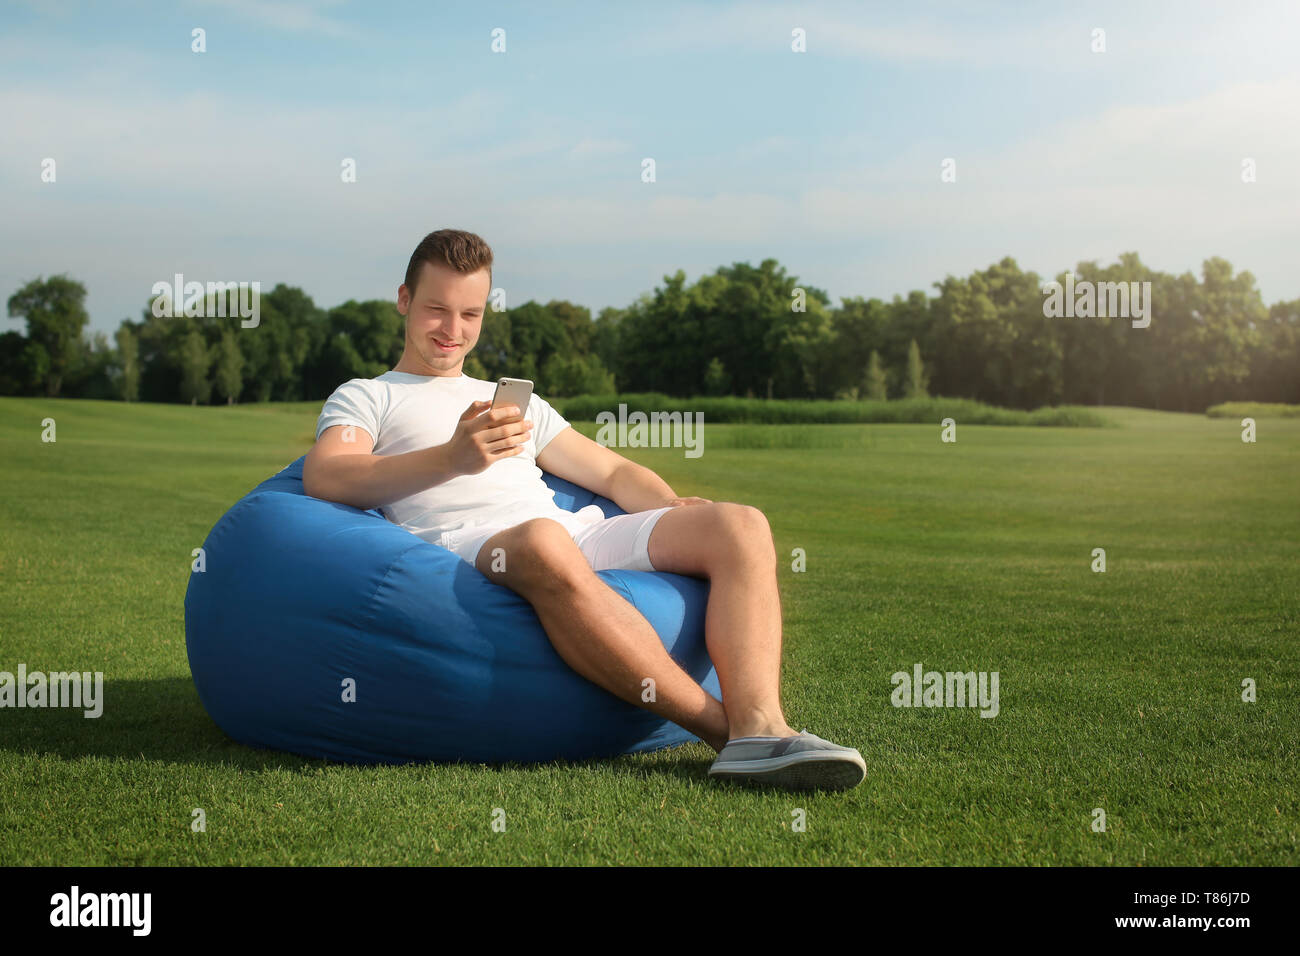 Young man with mobile phone resting on bean bag chair outdoors - Stock Image